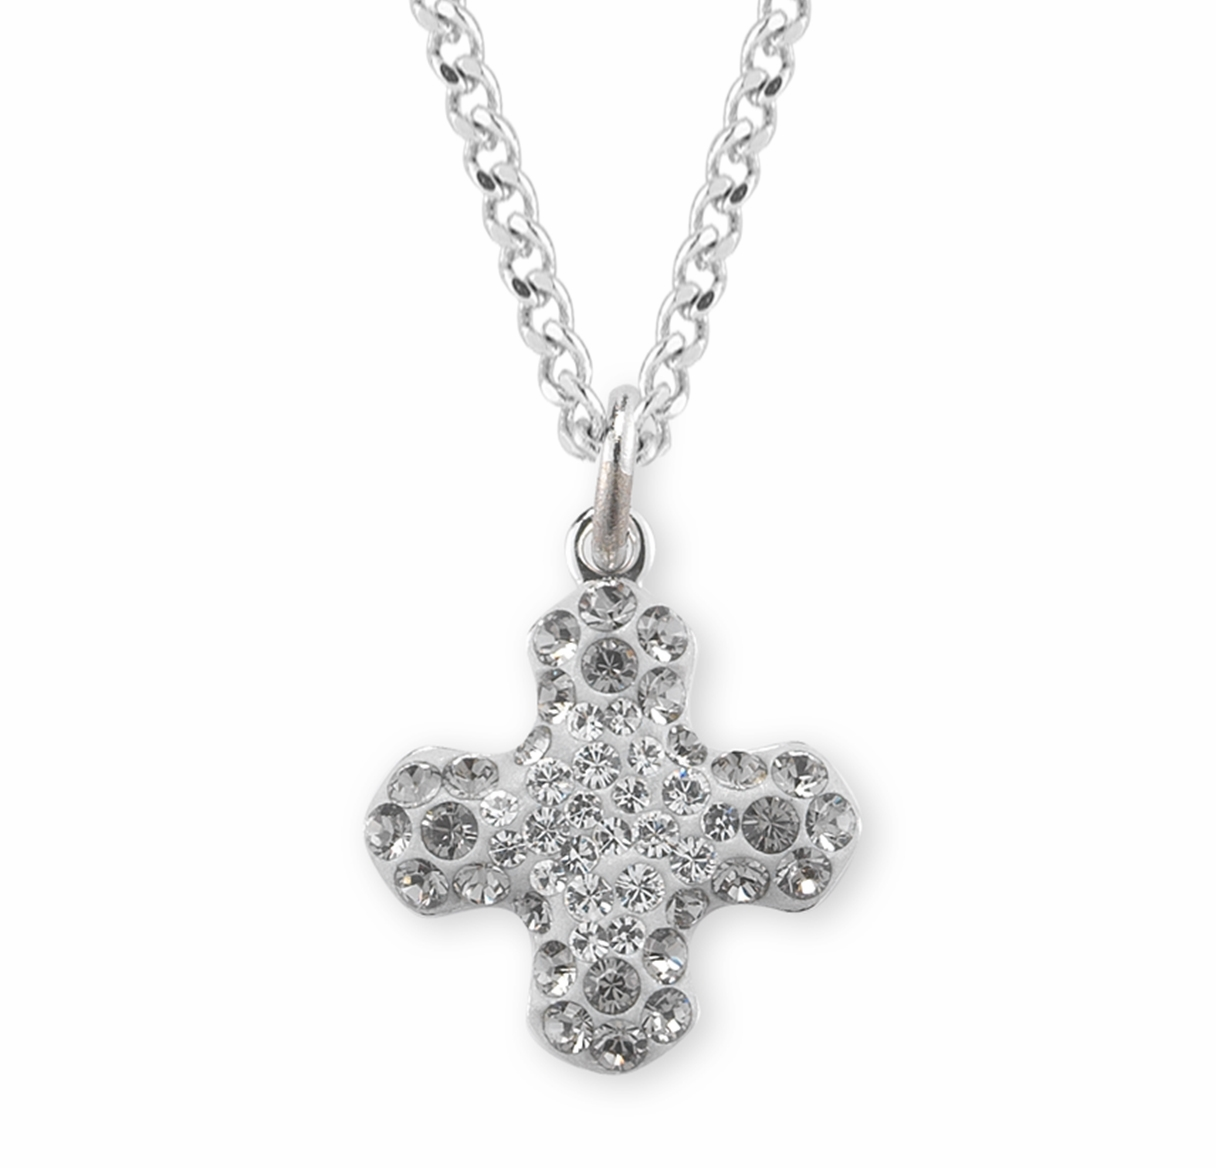 HMH Religious Black Diamond Swarovski Pave Greek Cross Pendant